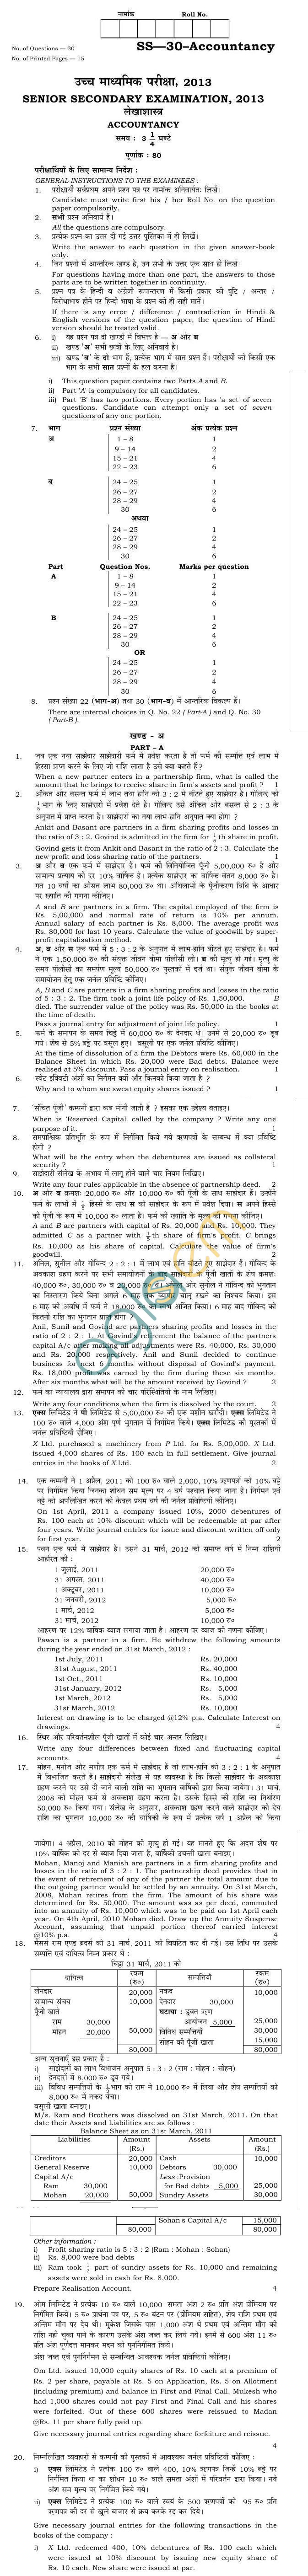 Rajasthan Board Sr. Secondary Accountancy Question Paper 2013